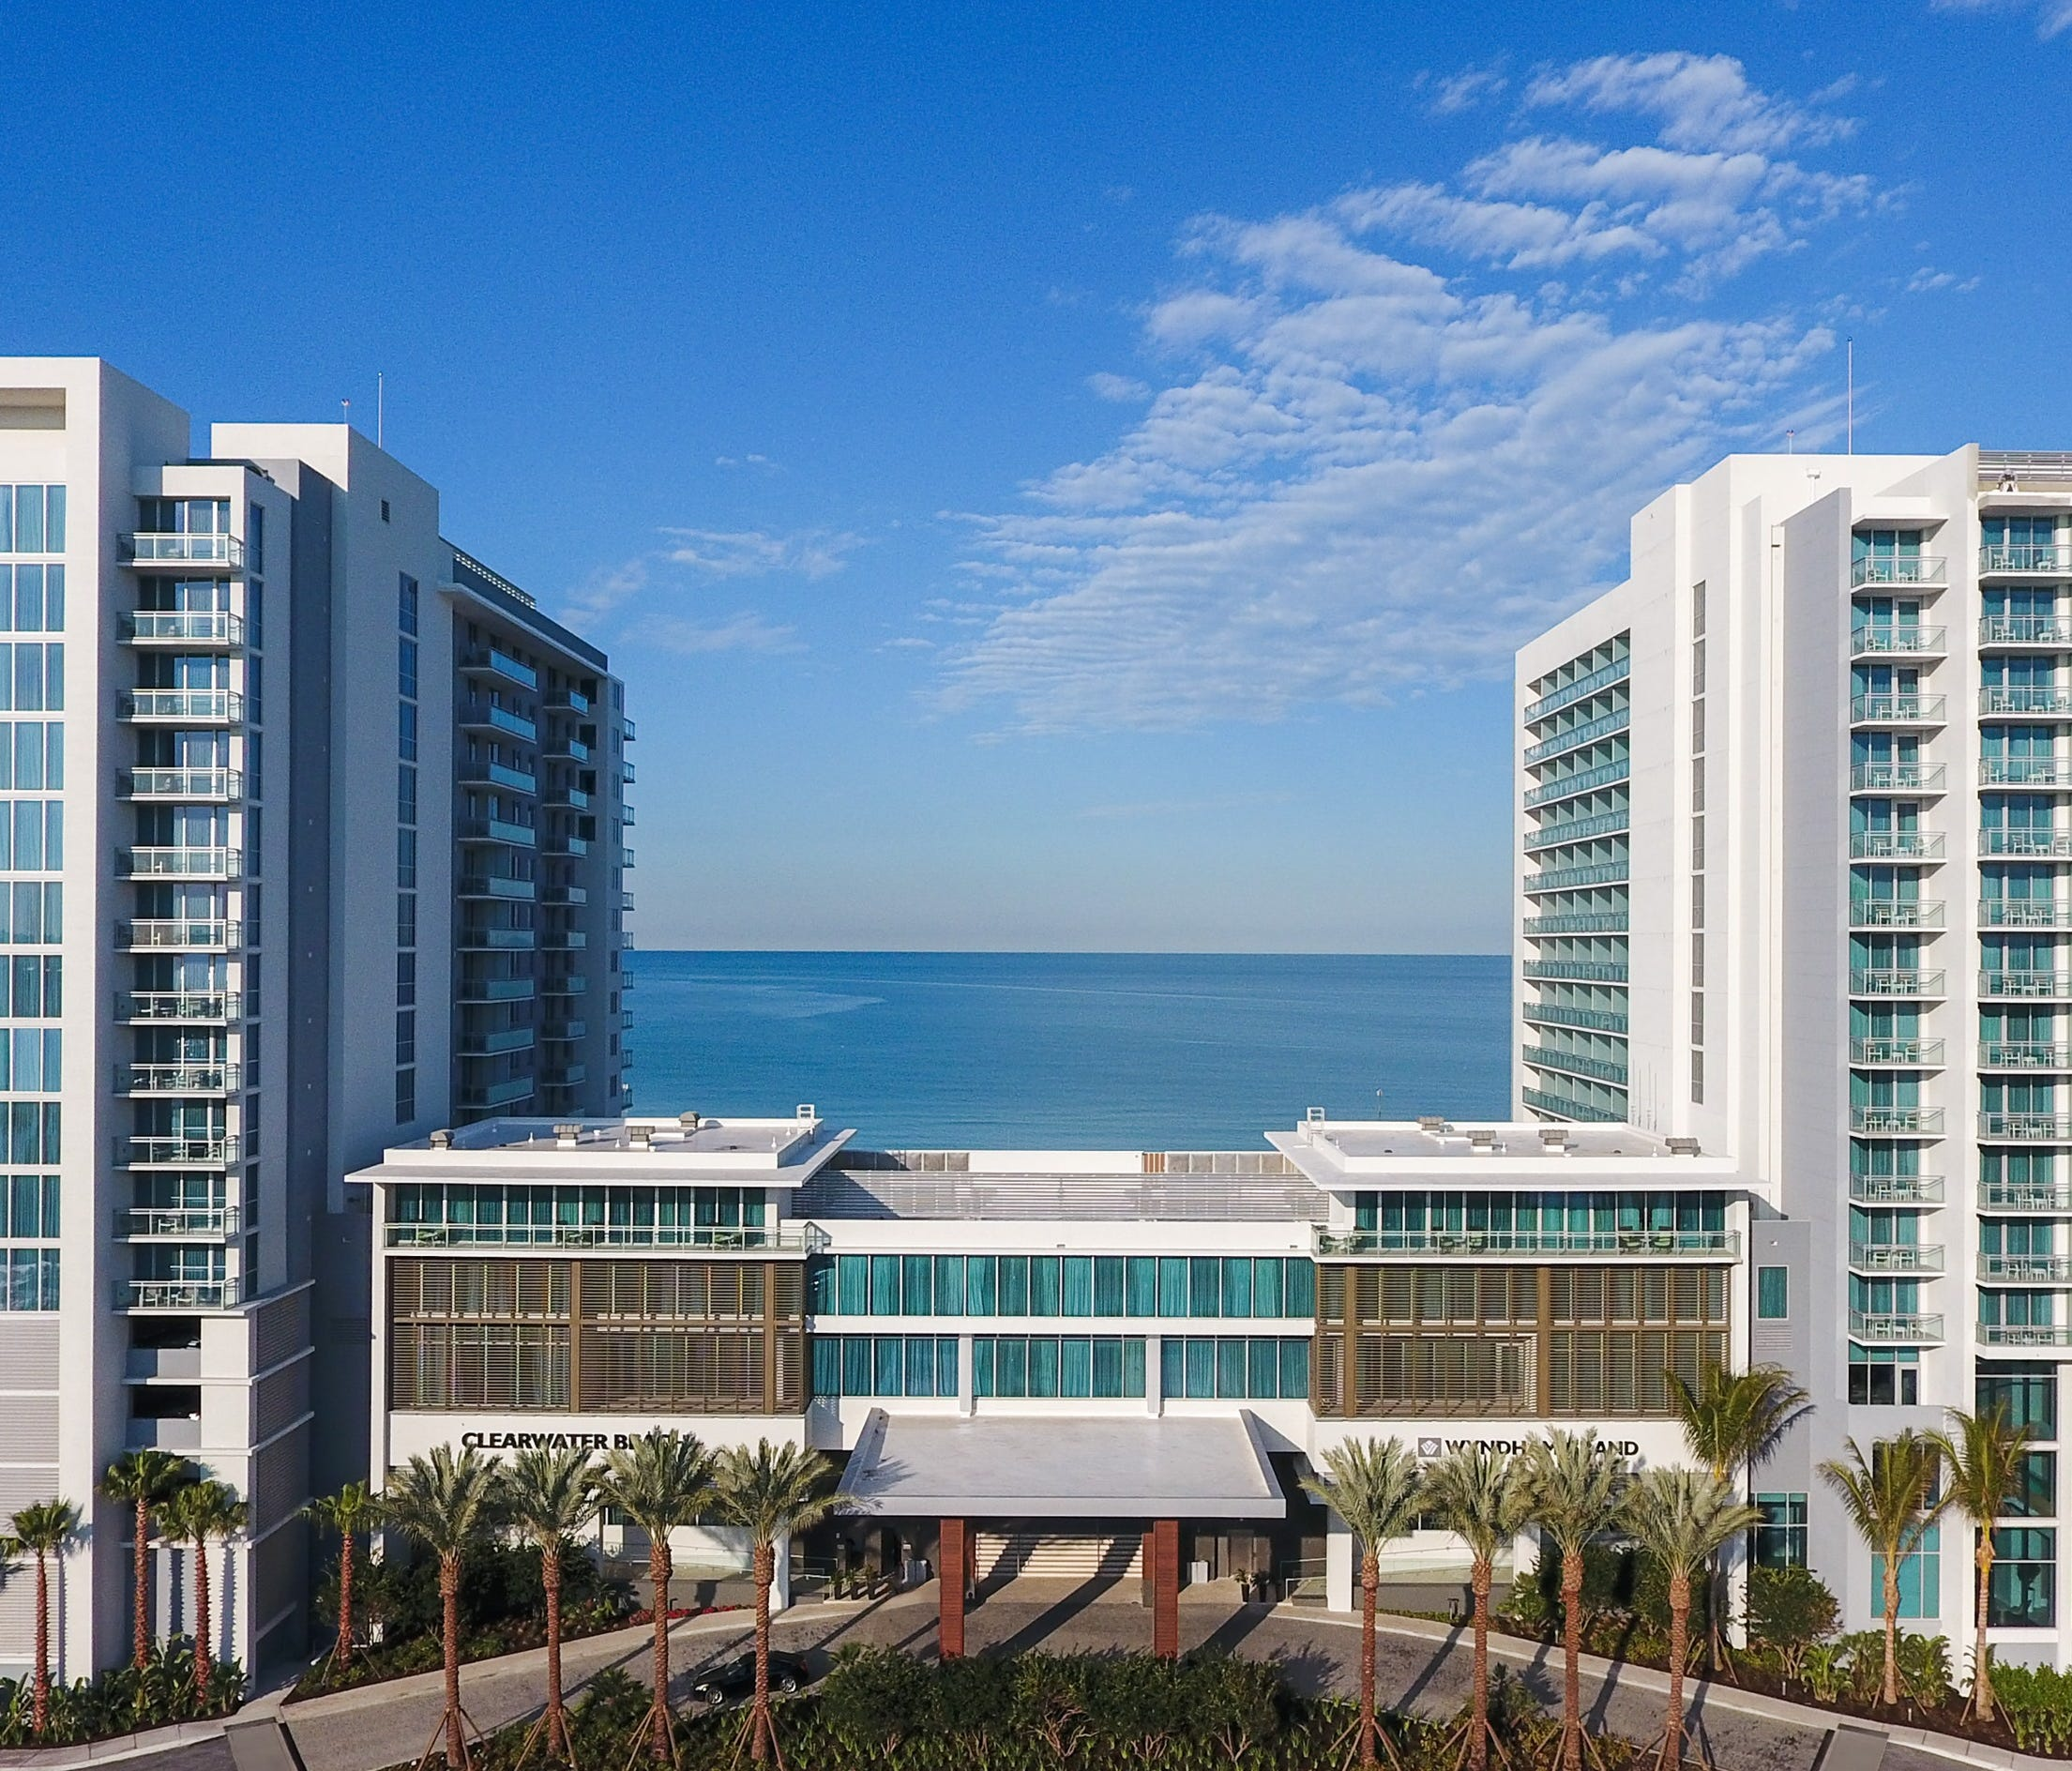 Wyndham Grand Clearwater Beach is one of 41 hotels in the brand.